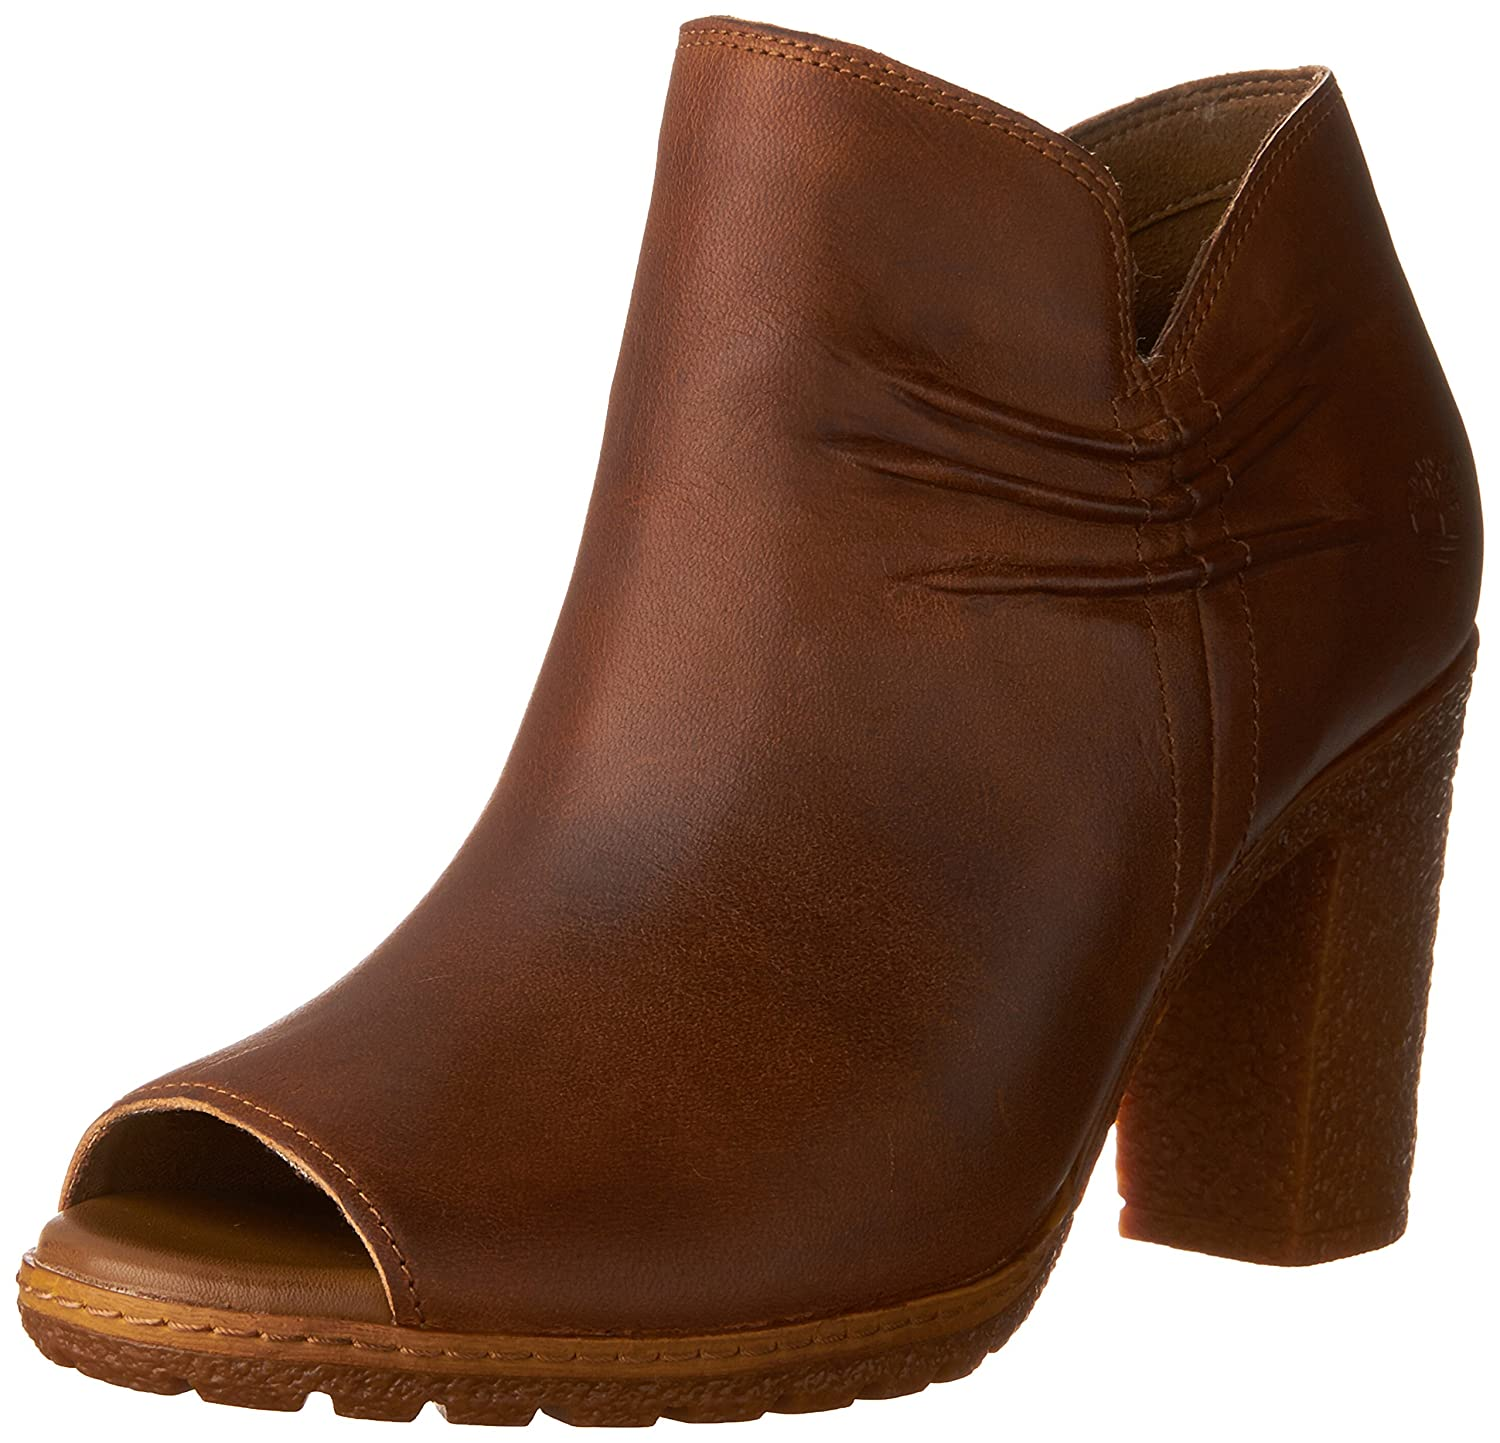 Timberland Women's Glancy Peep Toe Fashion Boots